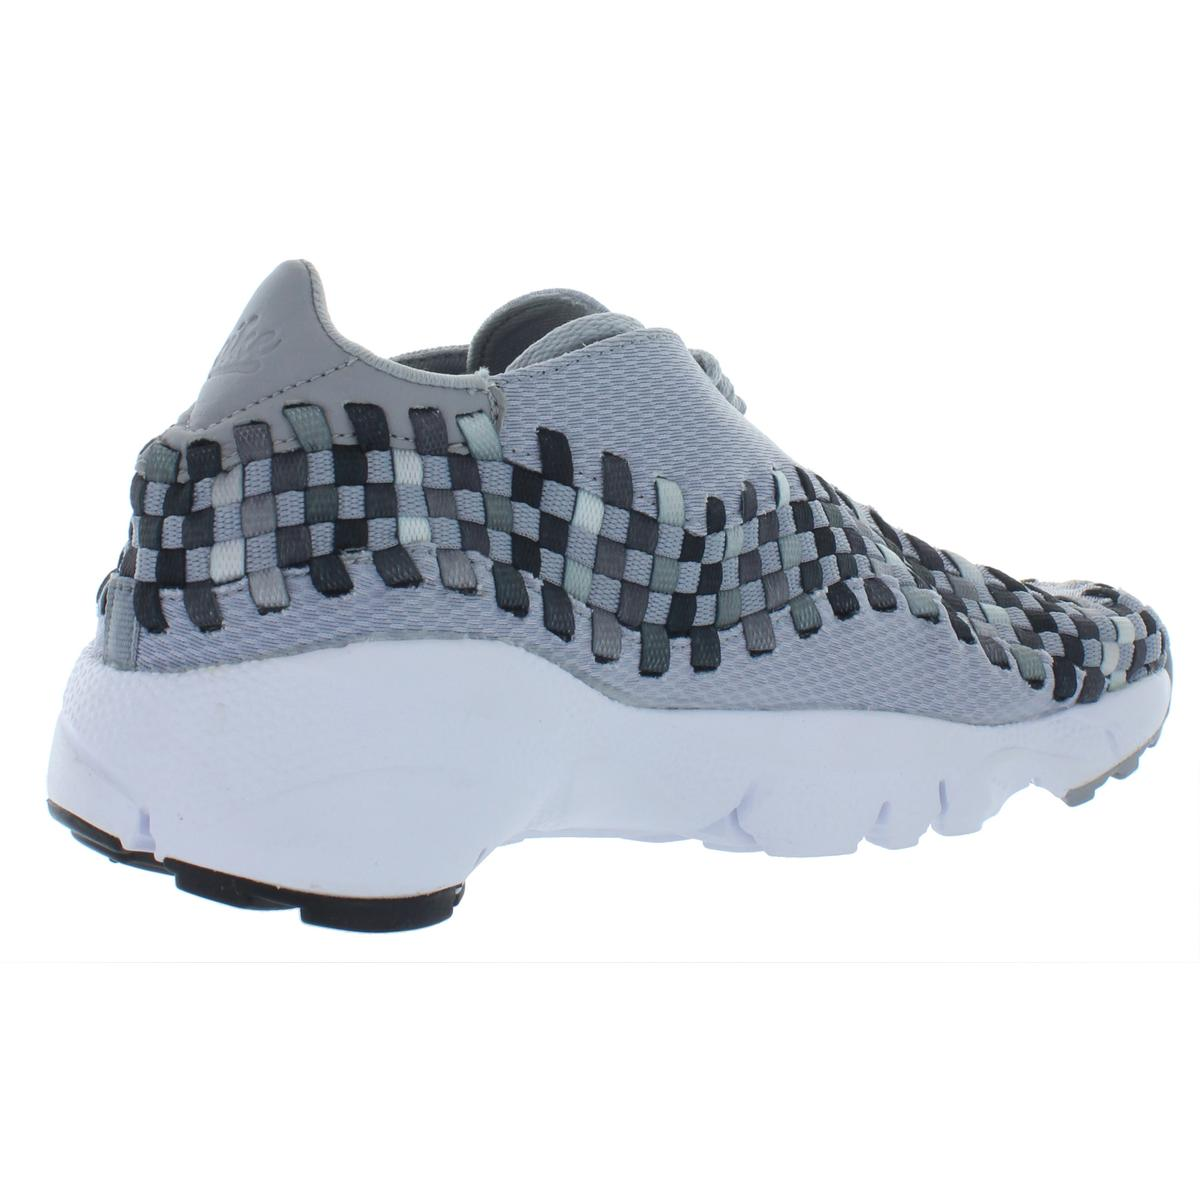 Nike-Mens-Air-Footscape-Woven-Low-Top-Lifestyle-Fashion-Sneakers-Shoes-BHFO-3976 thumbnail 11